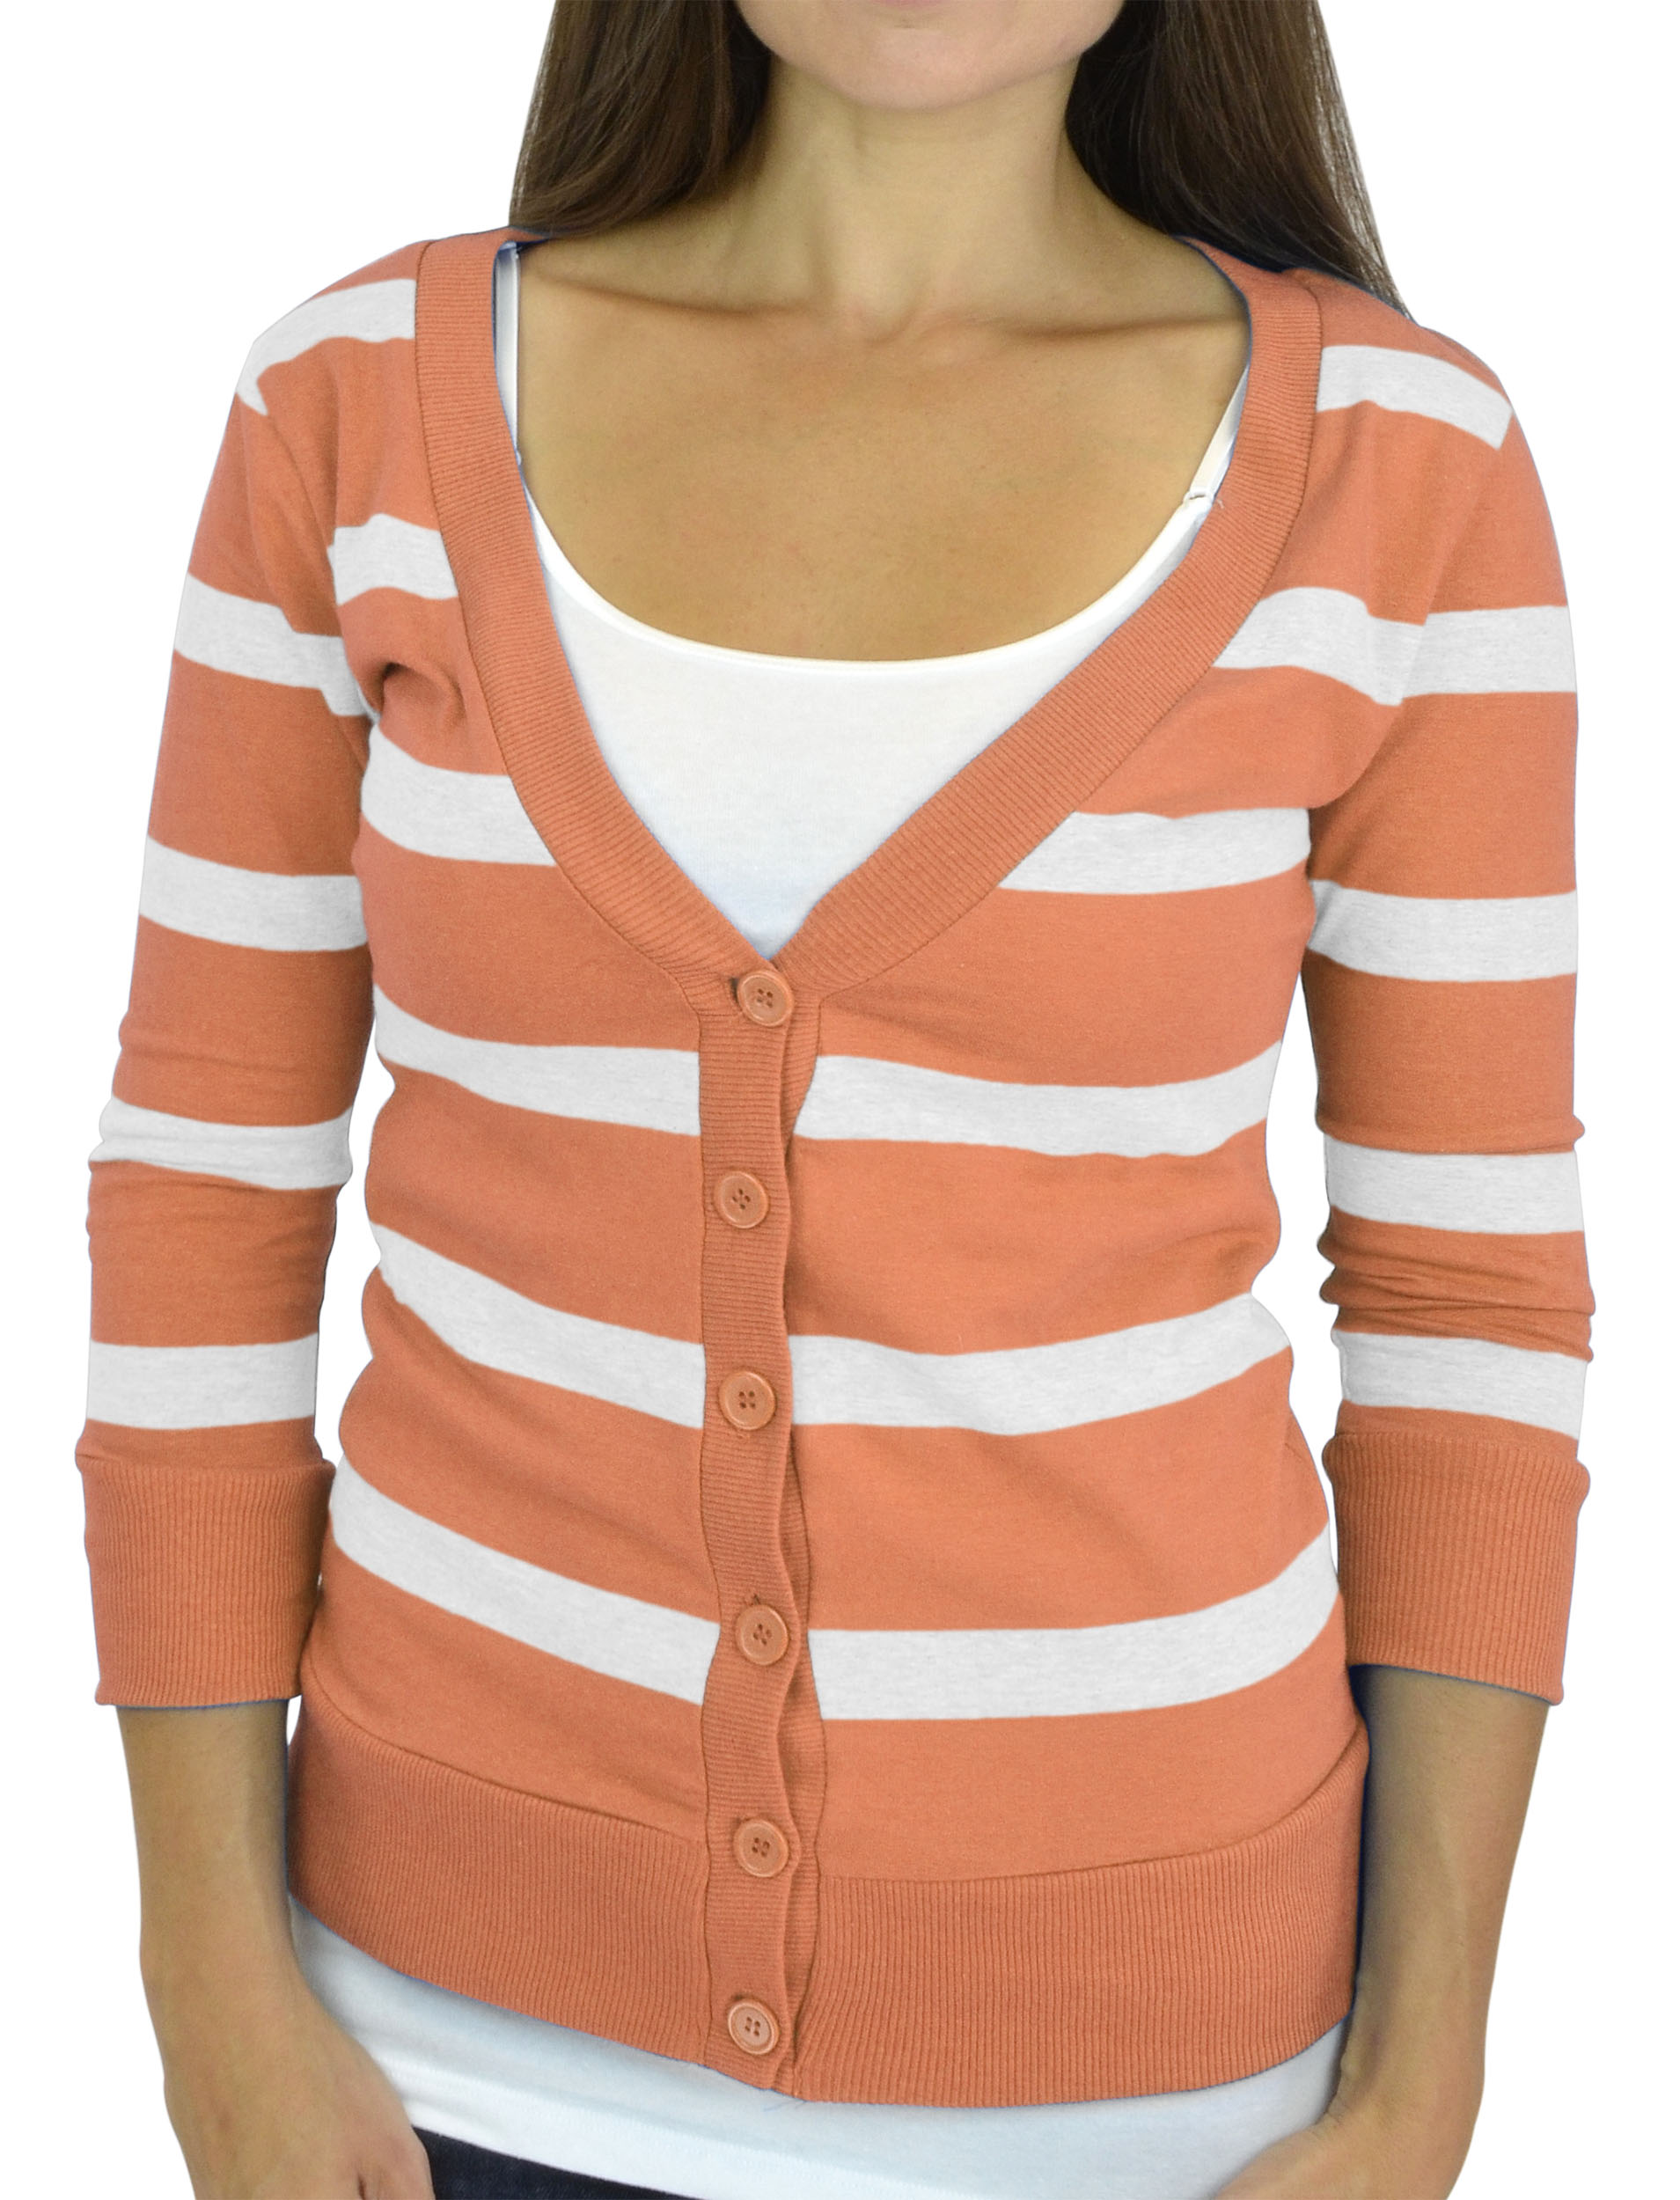 Belle Donne - Women / Girl Junior Size Soft 3/4 Sleeve V-Neck Sweater Cardigans - Peach/Large